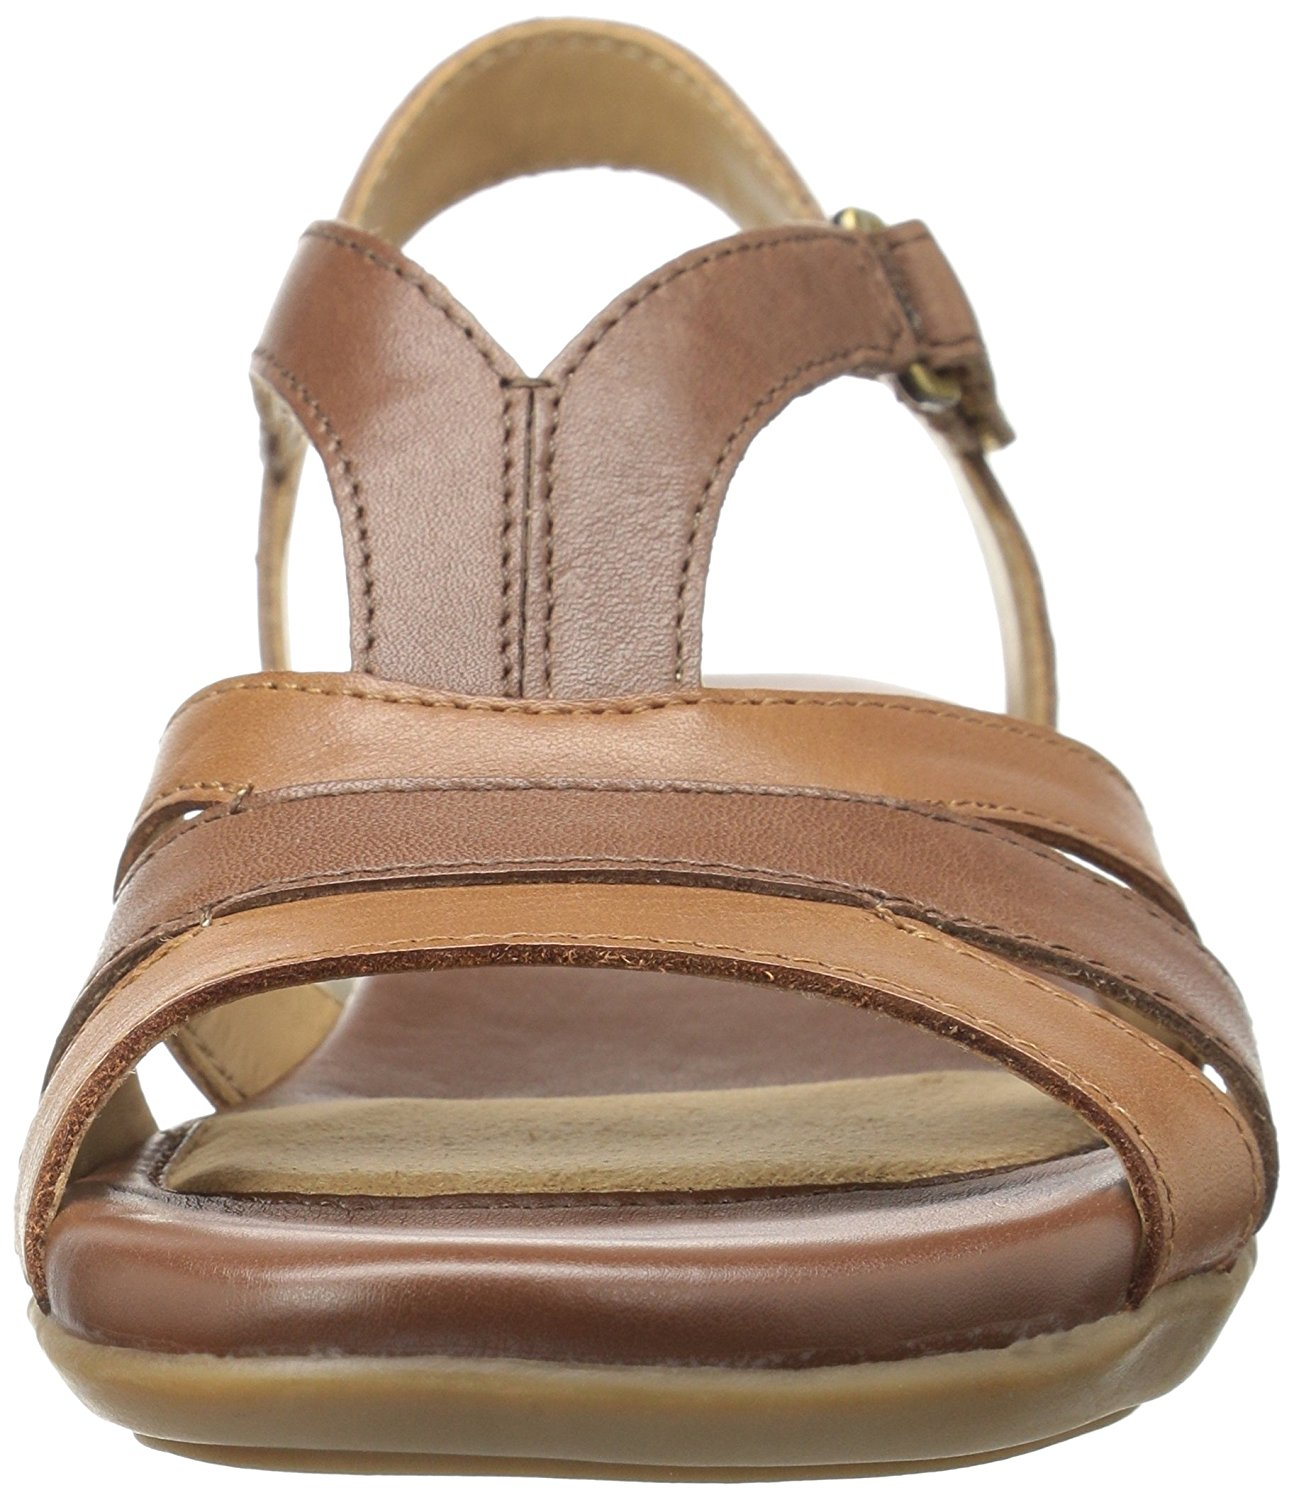 Naturalizer Donna Neina Pelle Open Casual Toe Casual Open Ankle Strap, Brown, Size 7.5 144f8d